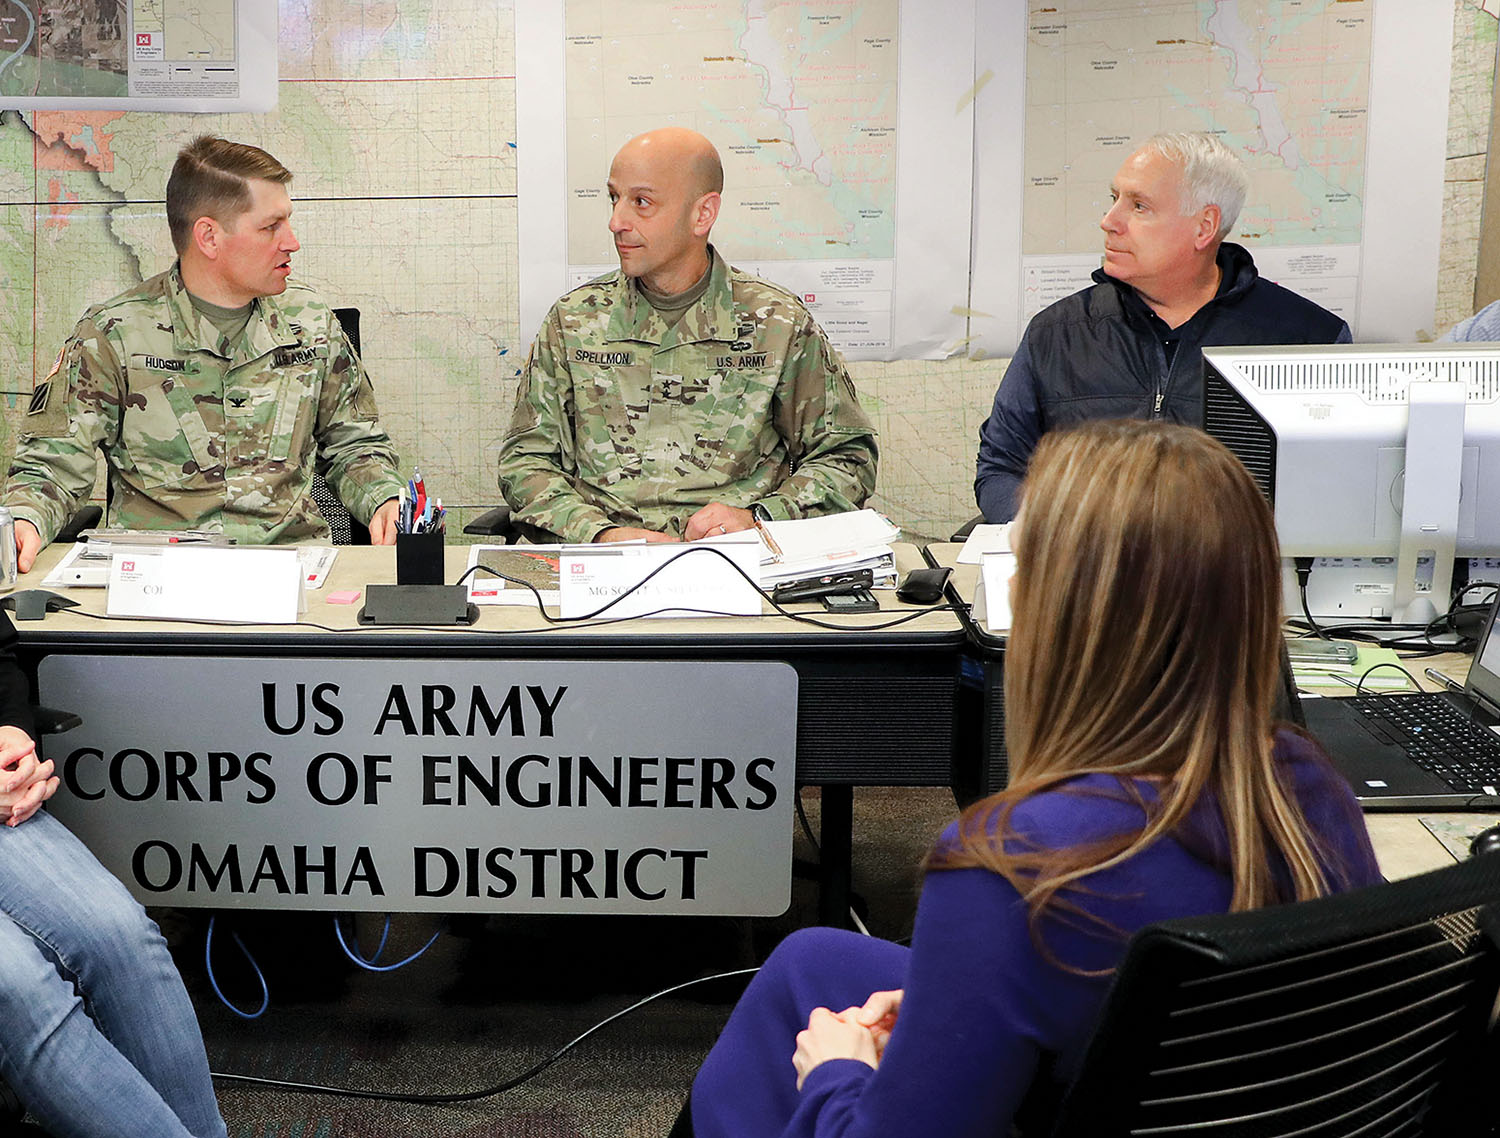 Col. John Hudson (left), commander, deputy commanding general for civil works and emergency operations; Maj. Gen. Scott Spellmon; and Contingency Operations and Homeland Security Director Charles Alexander Jr. receive a briefing on flood fighting in the upper Missouri River basin in the emergency operations center of the Omaha District headquarters March 20. (Photo courtesy of Omaha Engineer District)